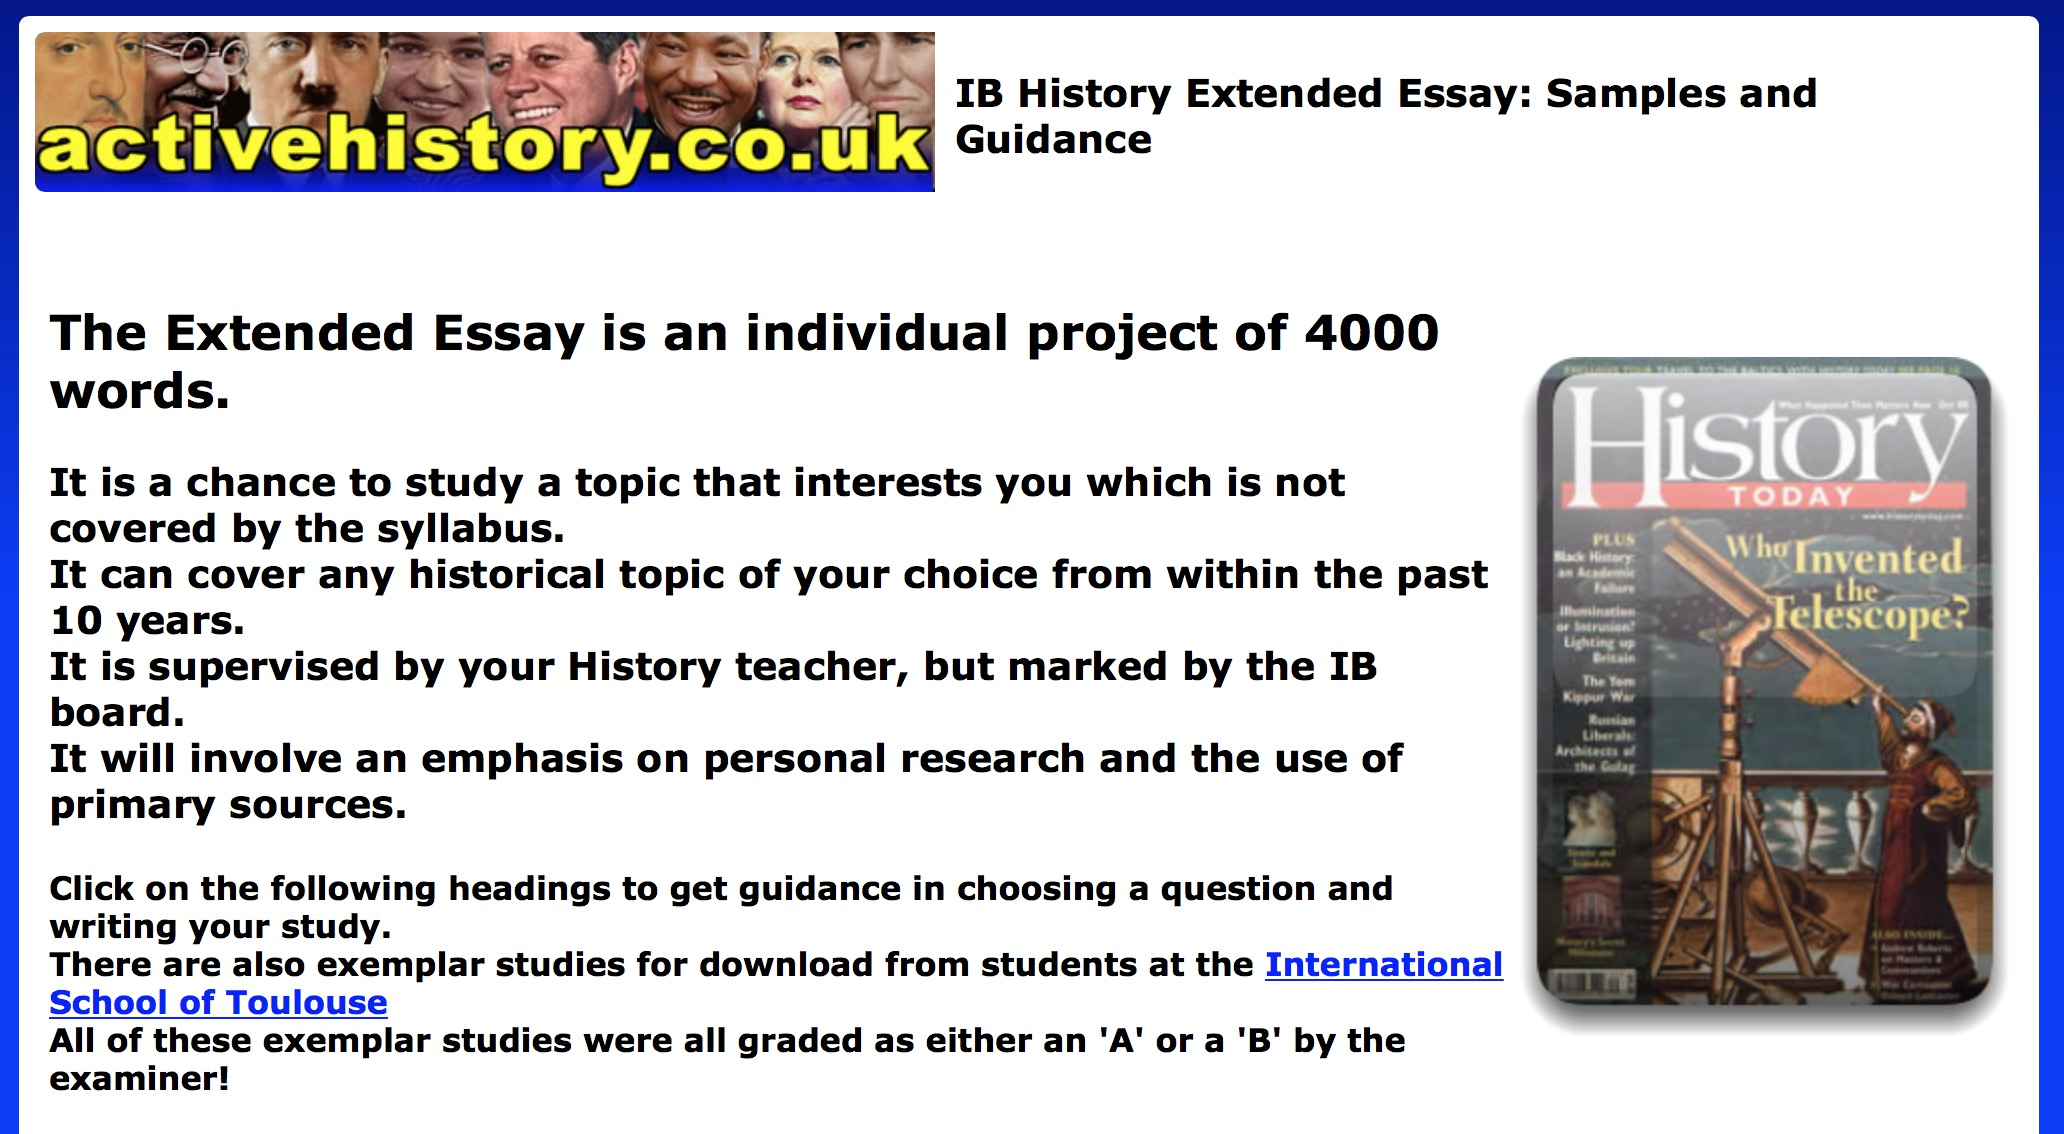 ib extended essay guide 2018